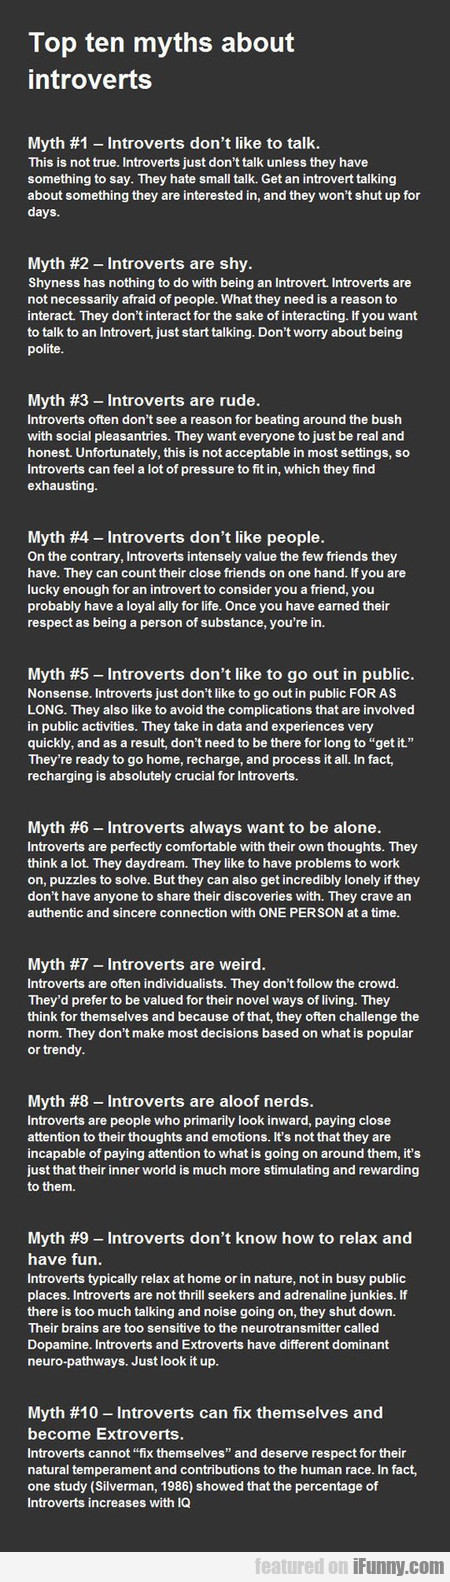 Top Ten Myths About Introverts